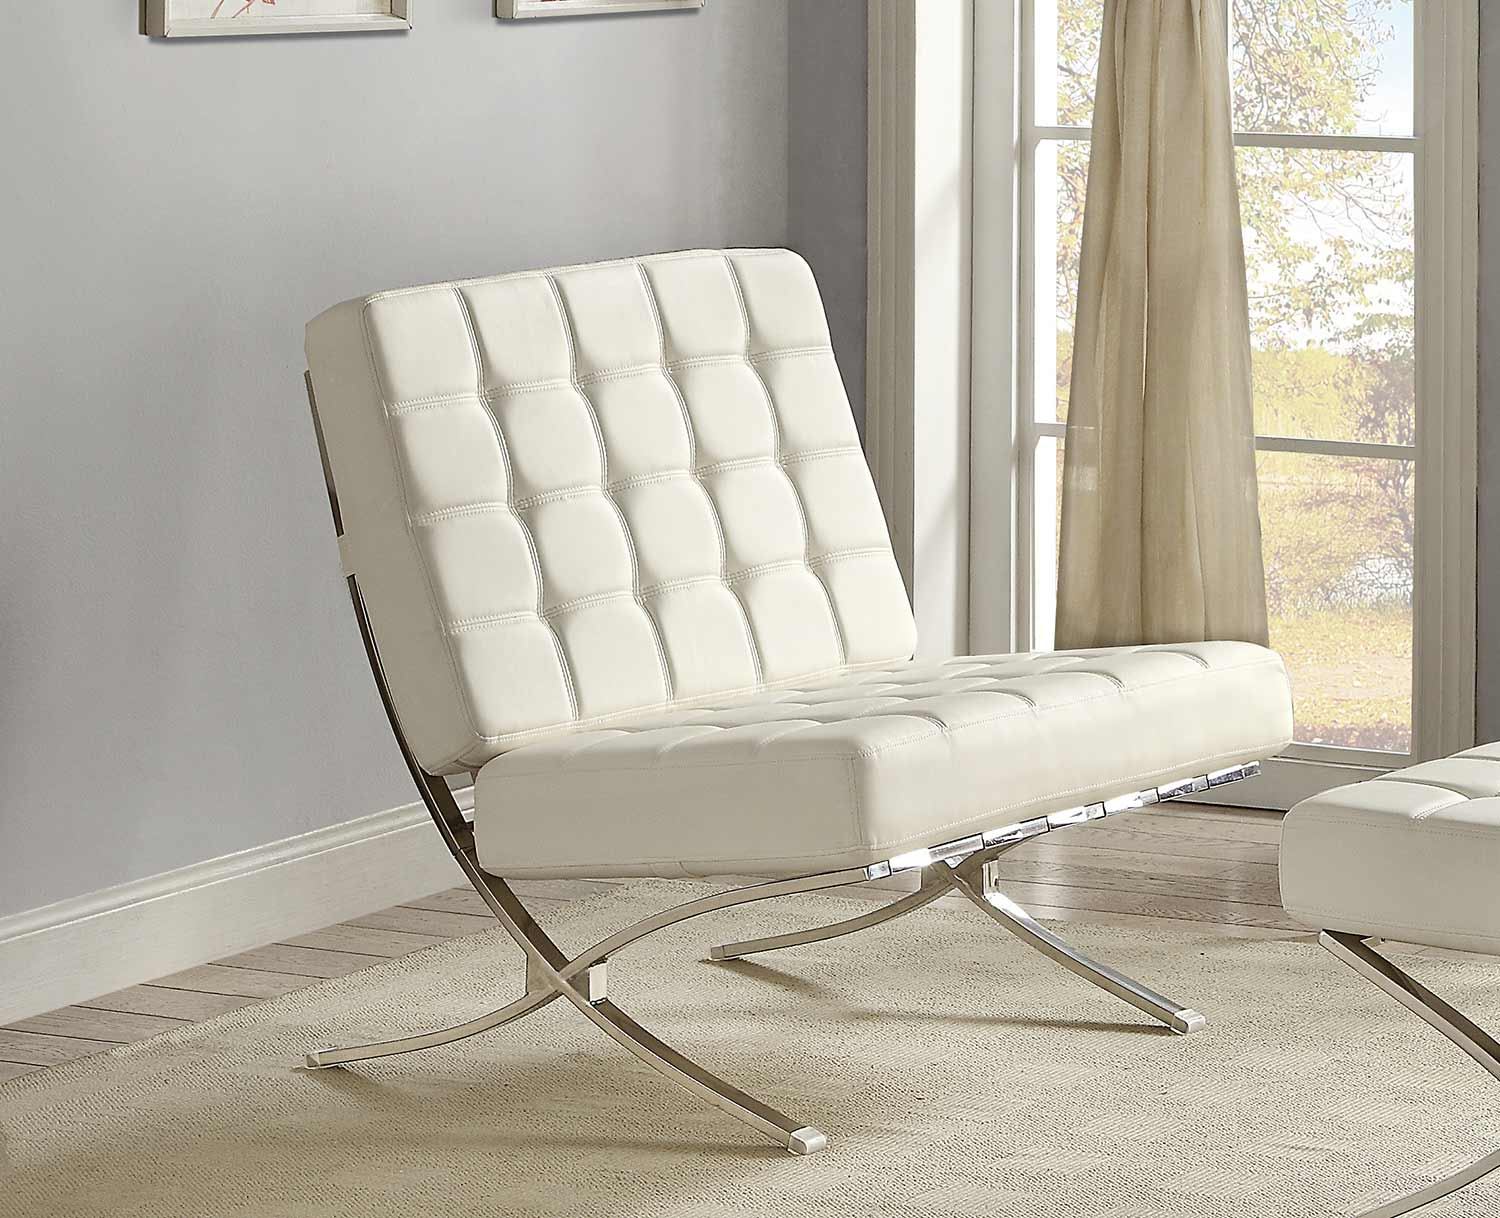 Homelegance Pesaro Chair - White